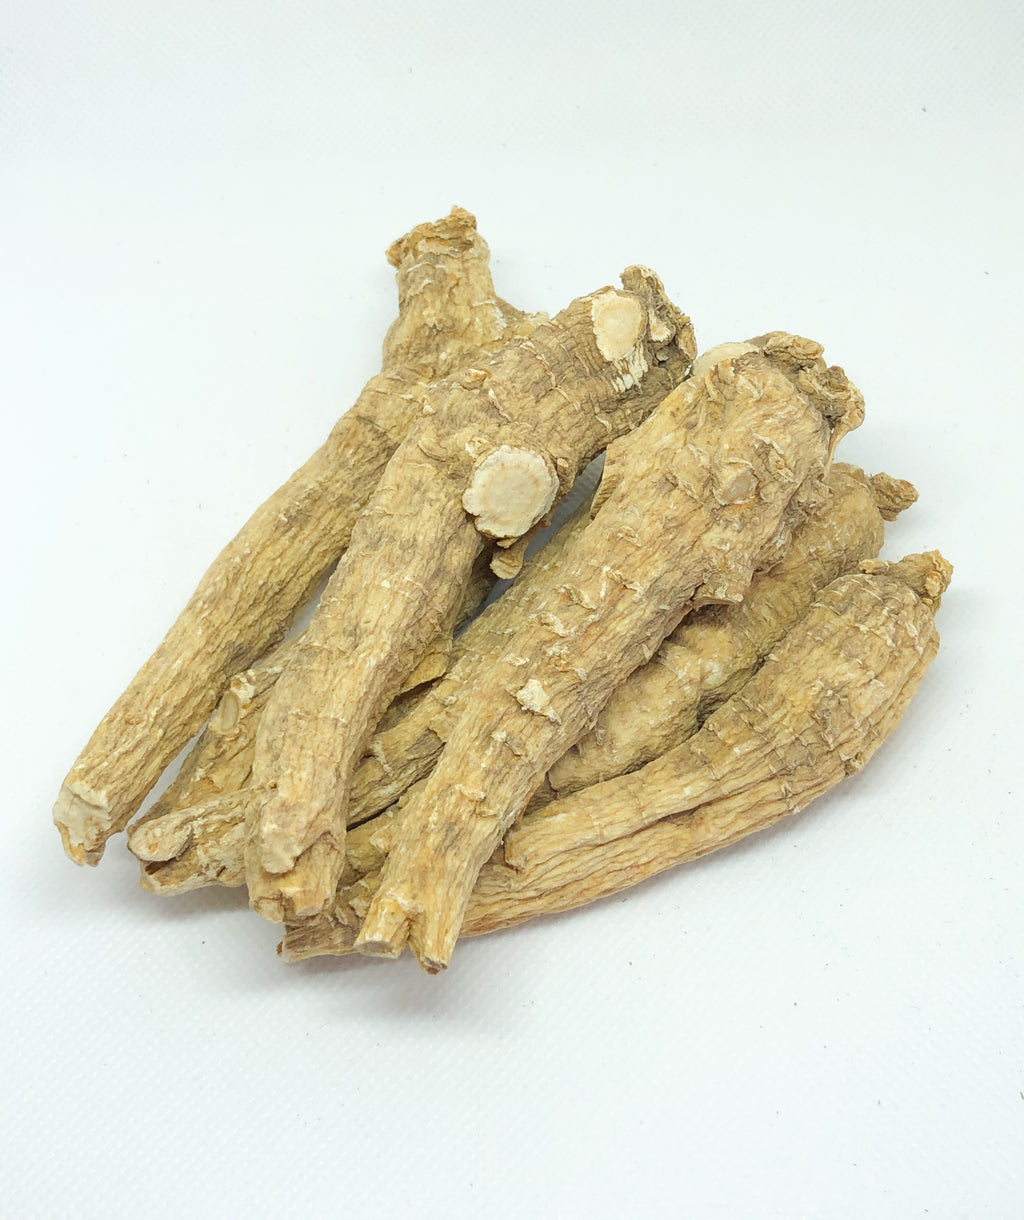 Graded Long Jumbo Wisconsin Grown American Ginseng By The Pound